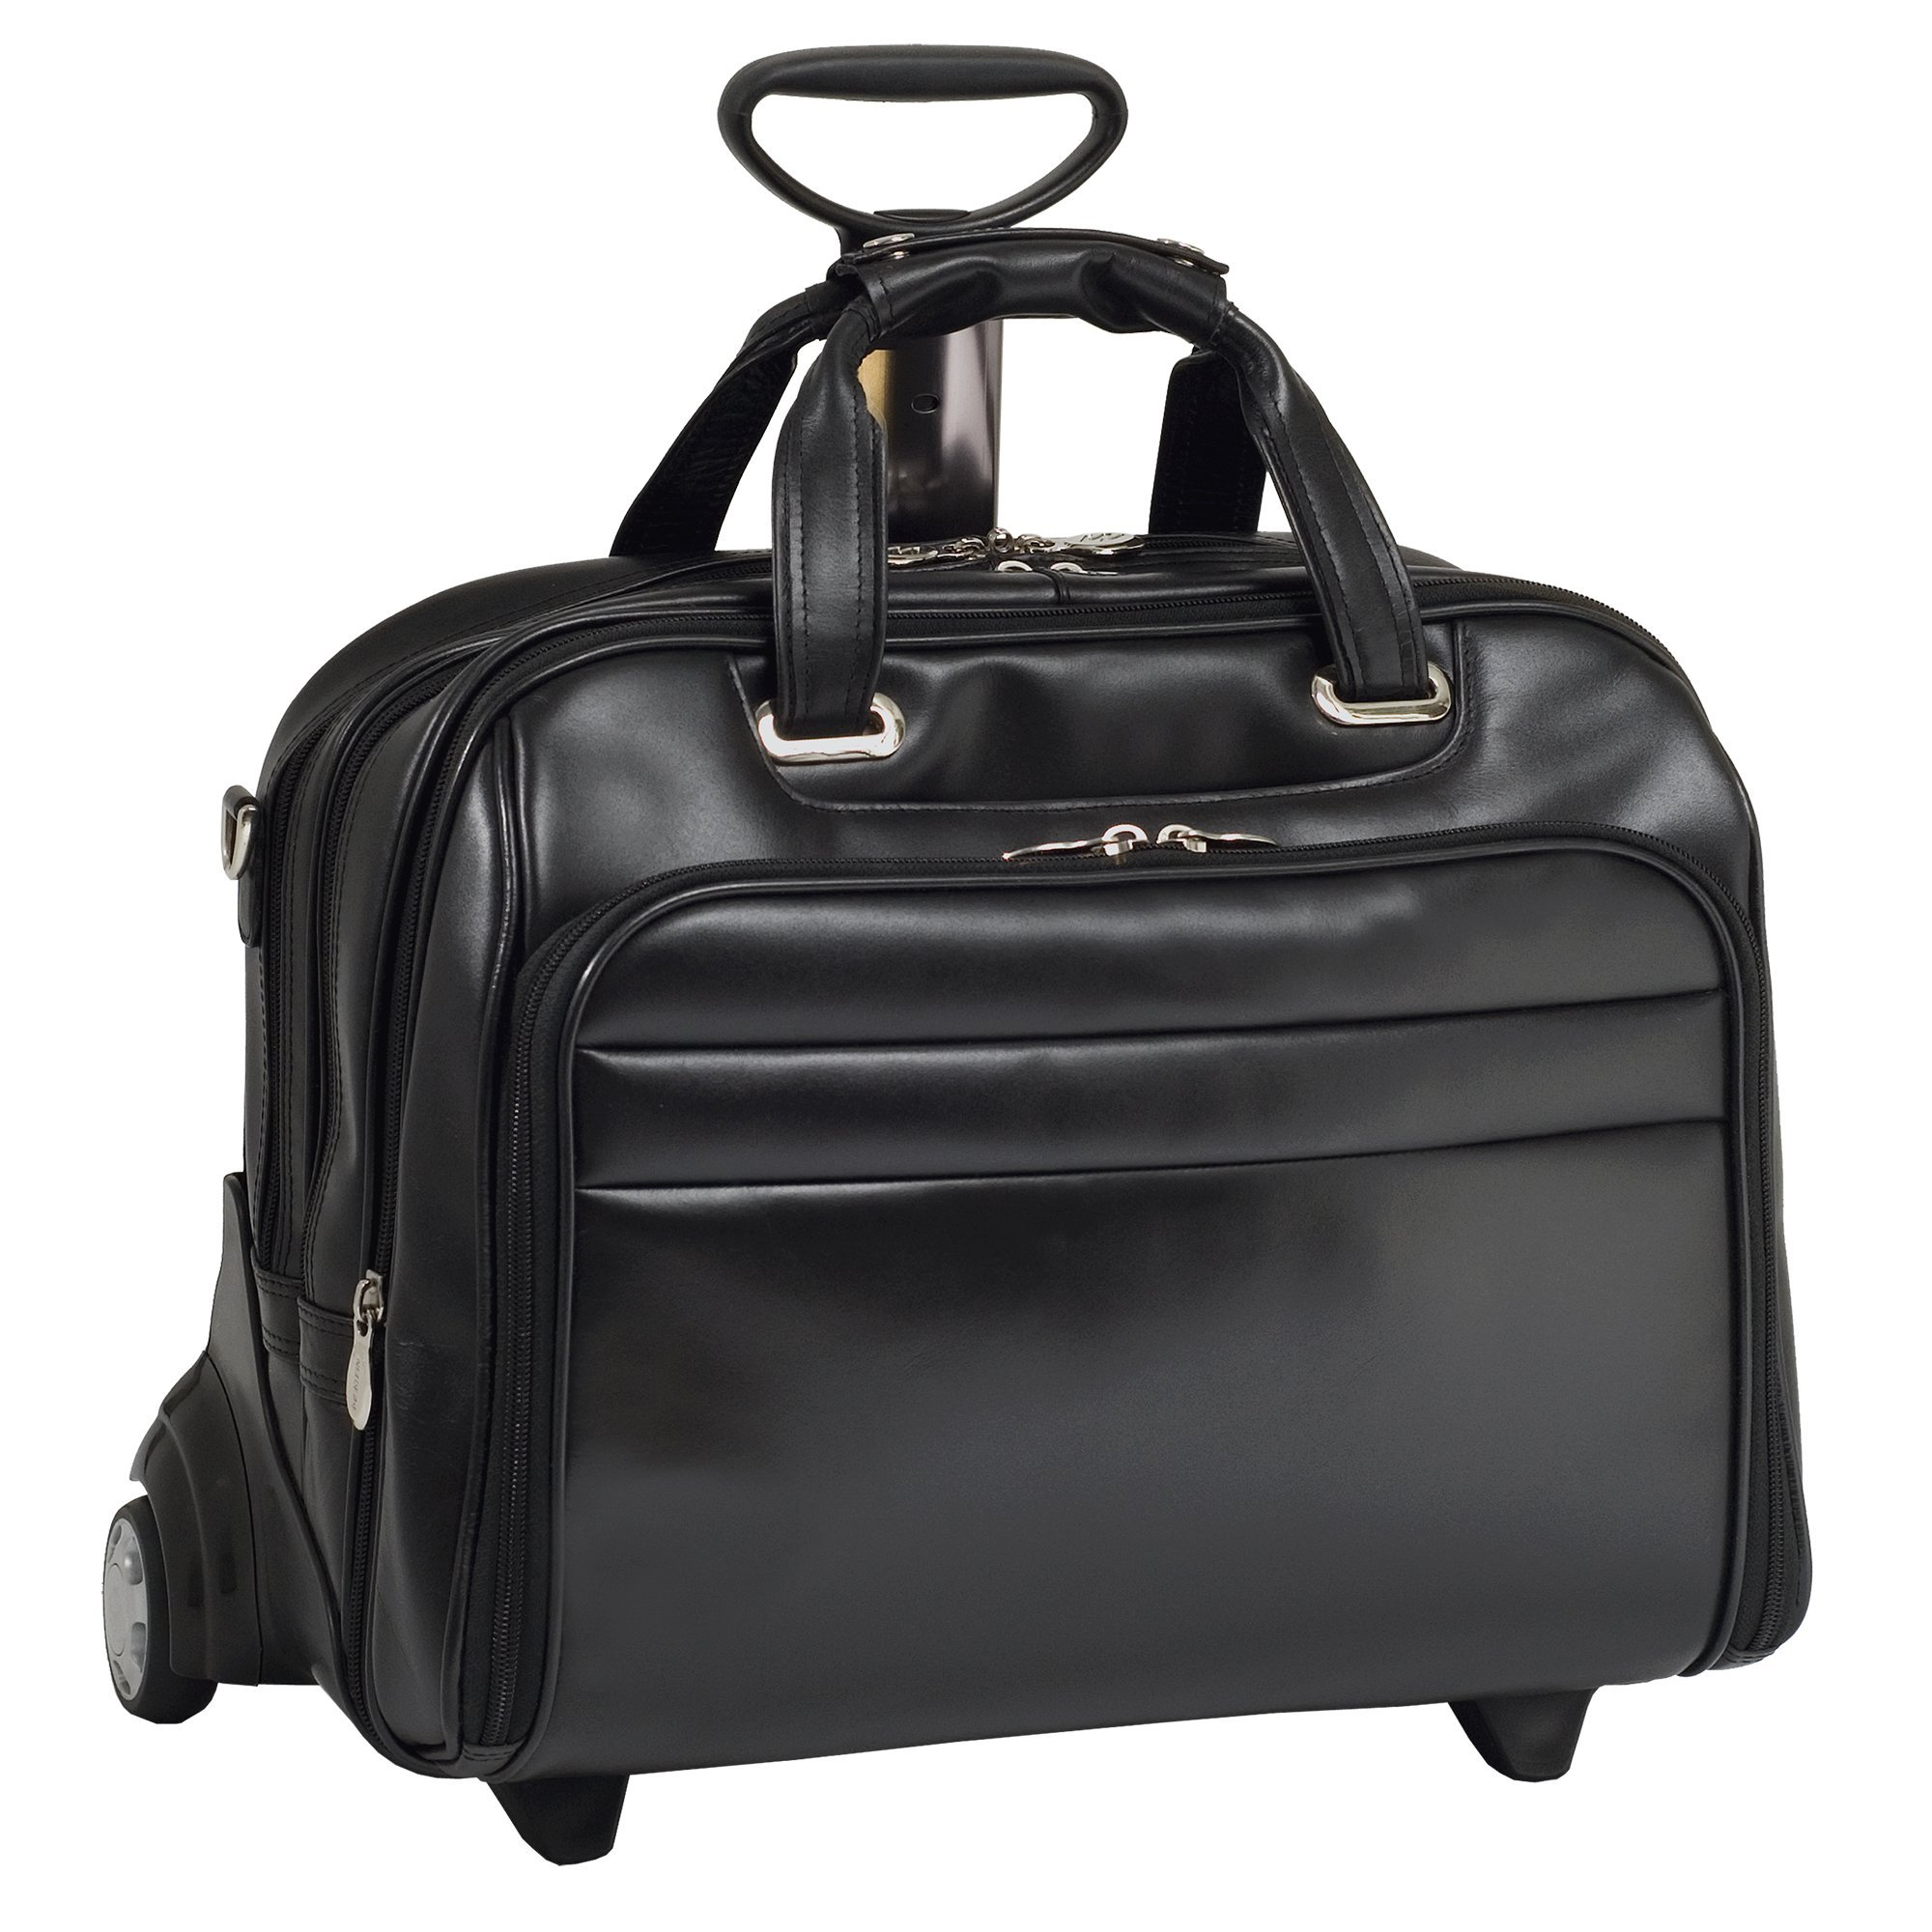 Check-point Friendly Wheeled Laptop Case, Leather, 15.6''in, Black - MIDWAY | Mcklein